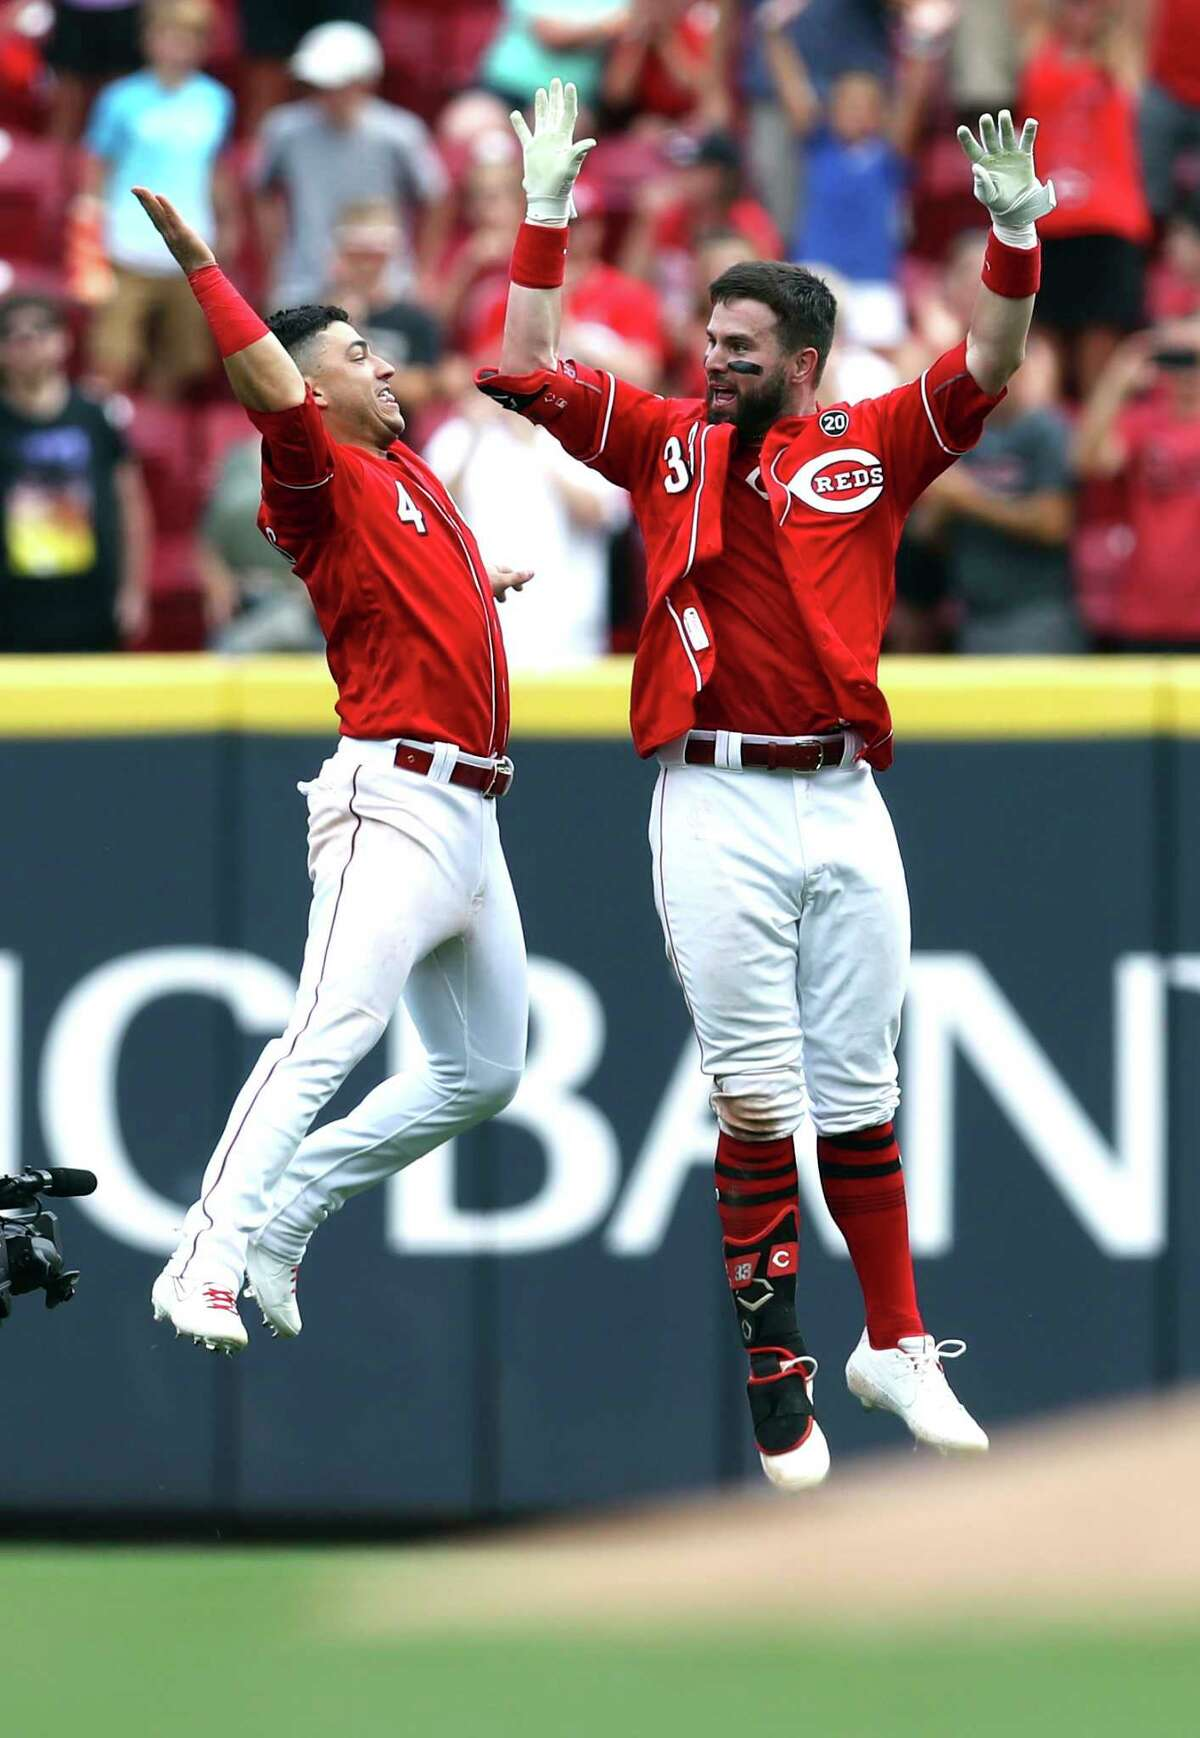 Cincinnati Reds' Jesse Winker, right, celebrates with Jose Iglesias, left, after hitting the game-winning RBI-single in the ninth inning of a baseball game against the Houston Astros, Wednesday, June 19, 2019, in Cincinnati. (AP Photo/Aaron Doster)